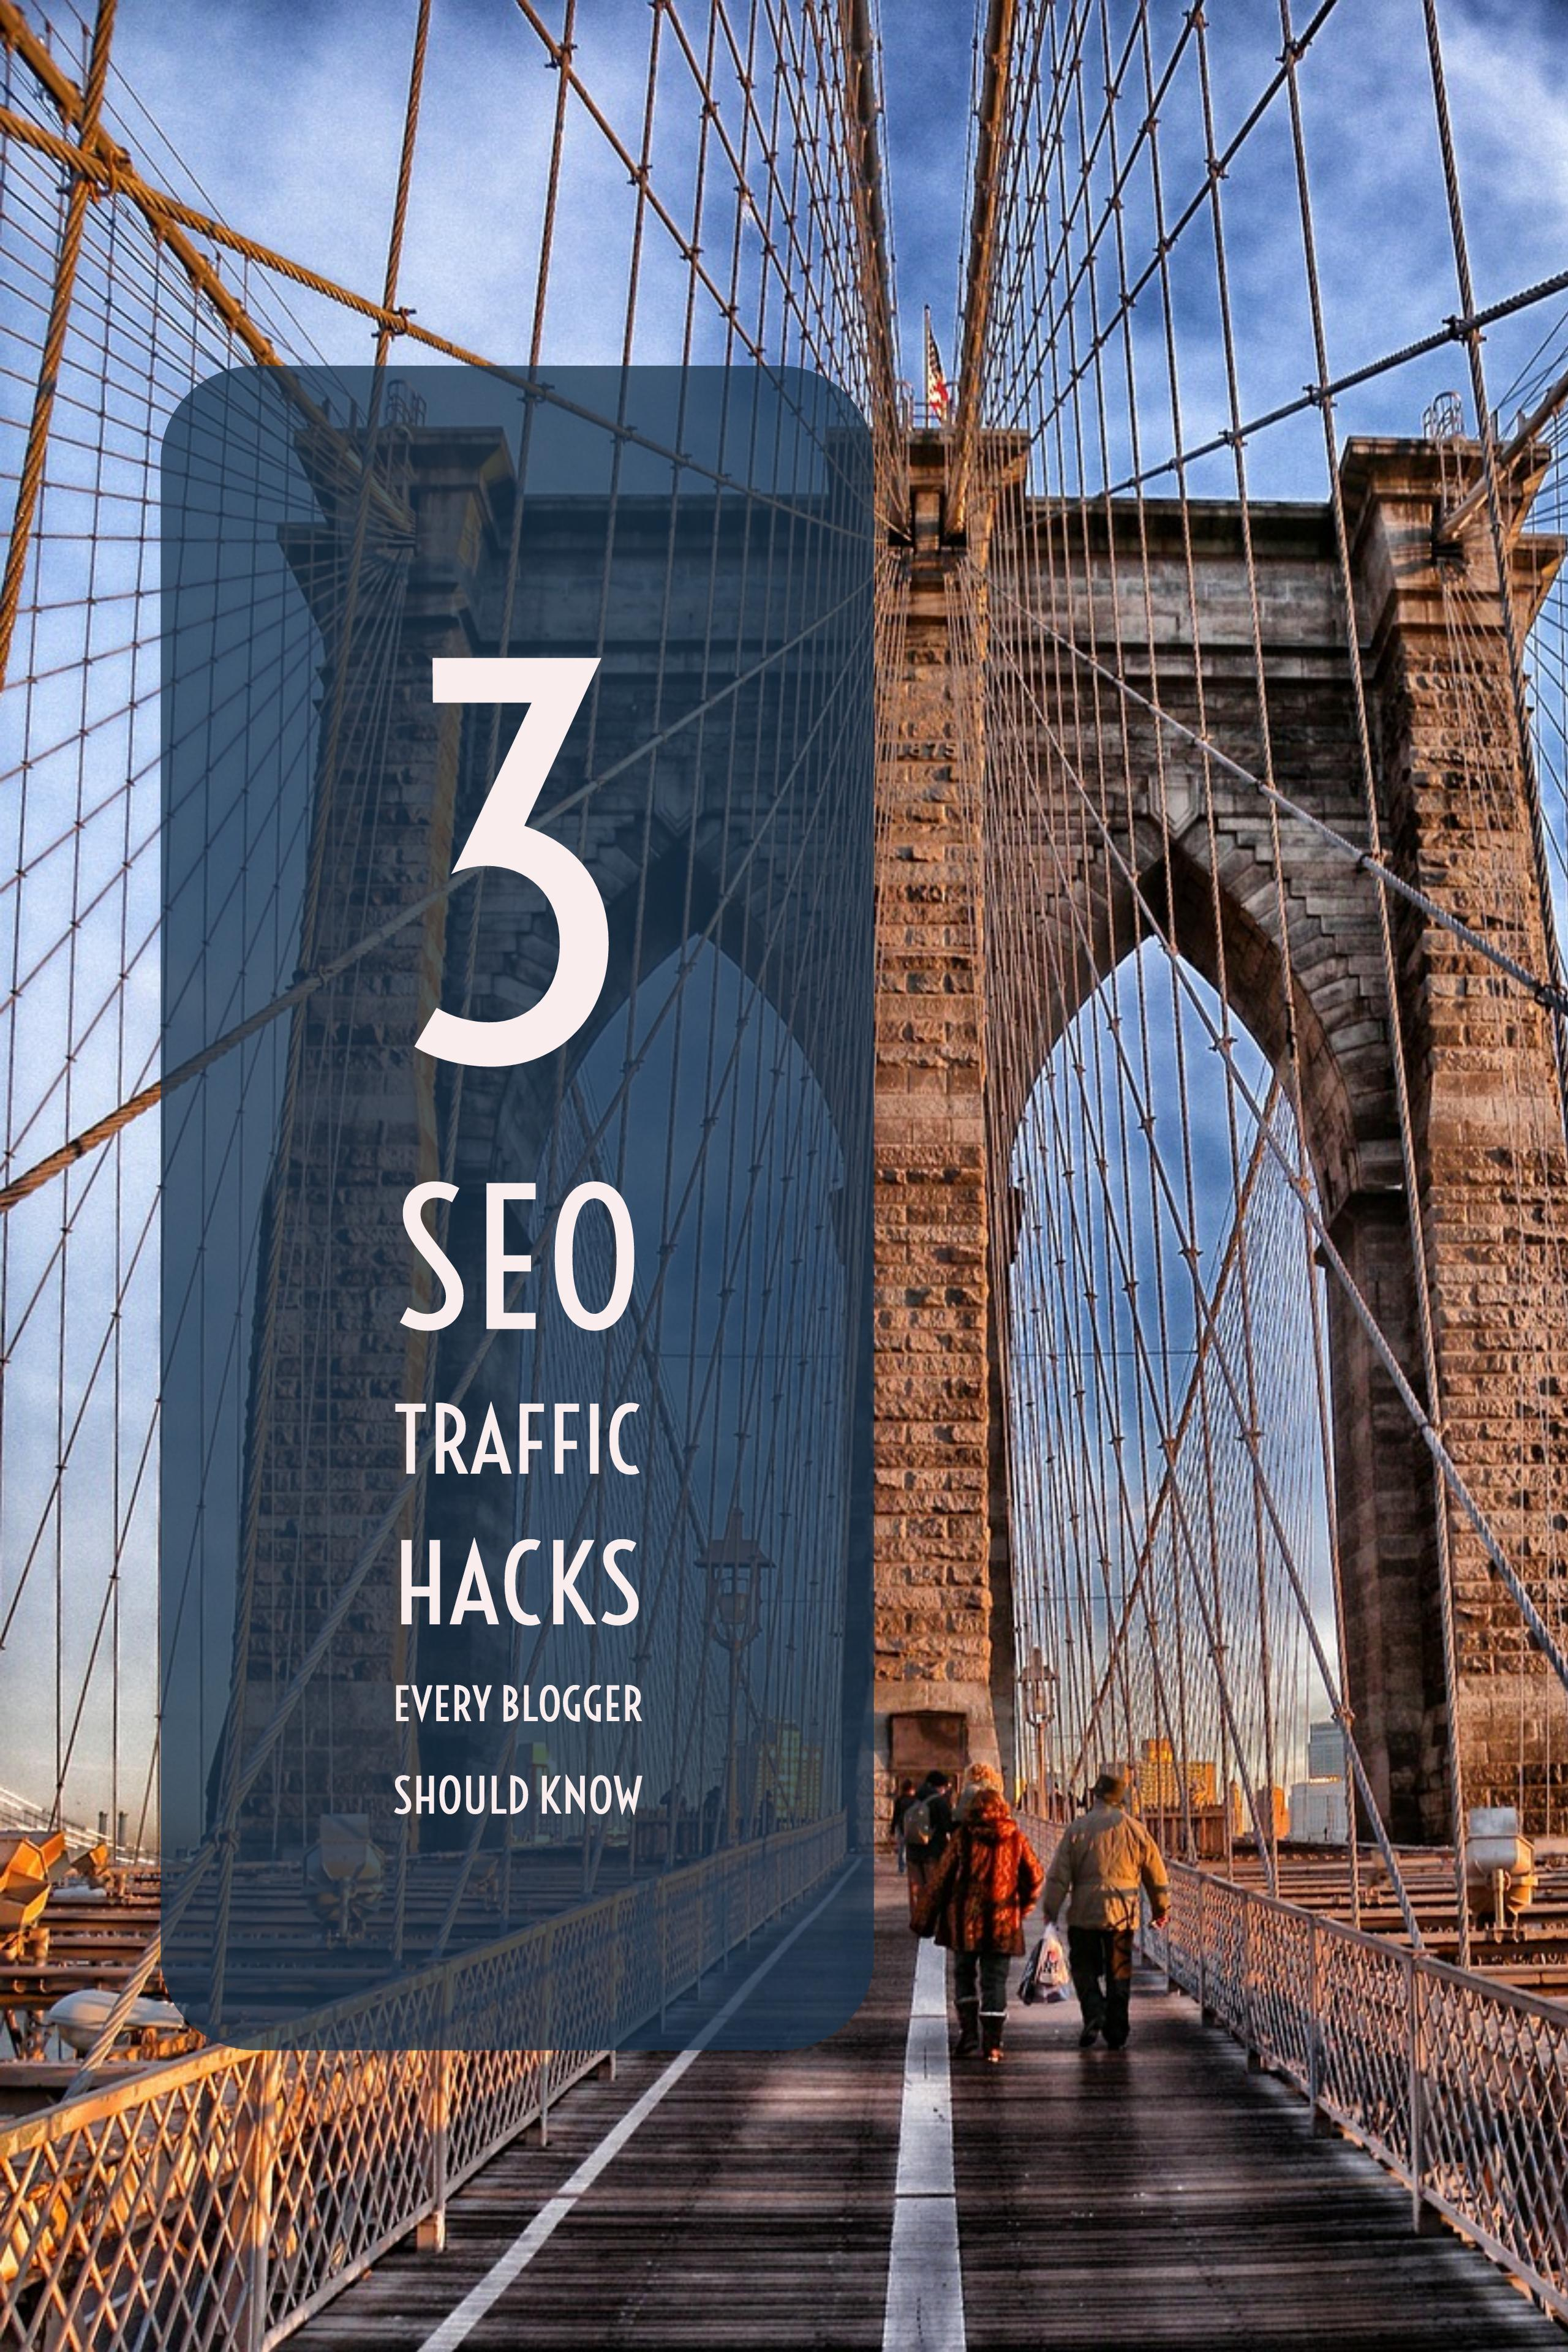 Here are the 3 best SEO Traffic Hacks I know that can push every blog to the top of Google's result pages!